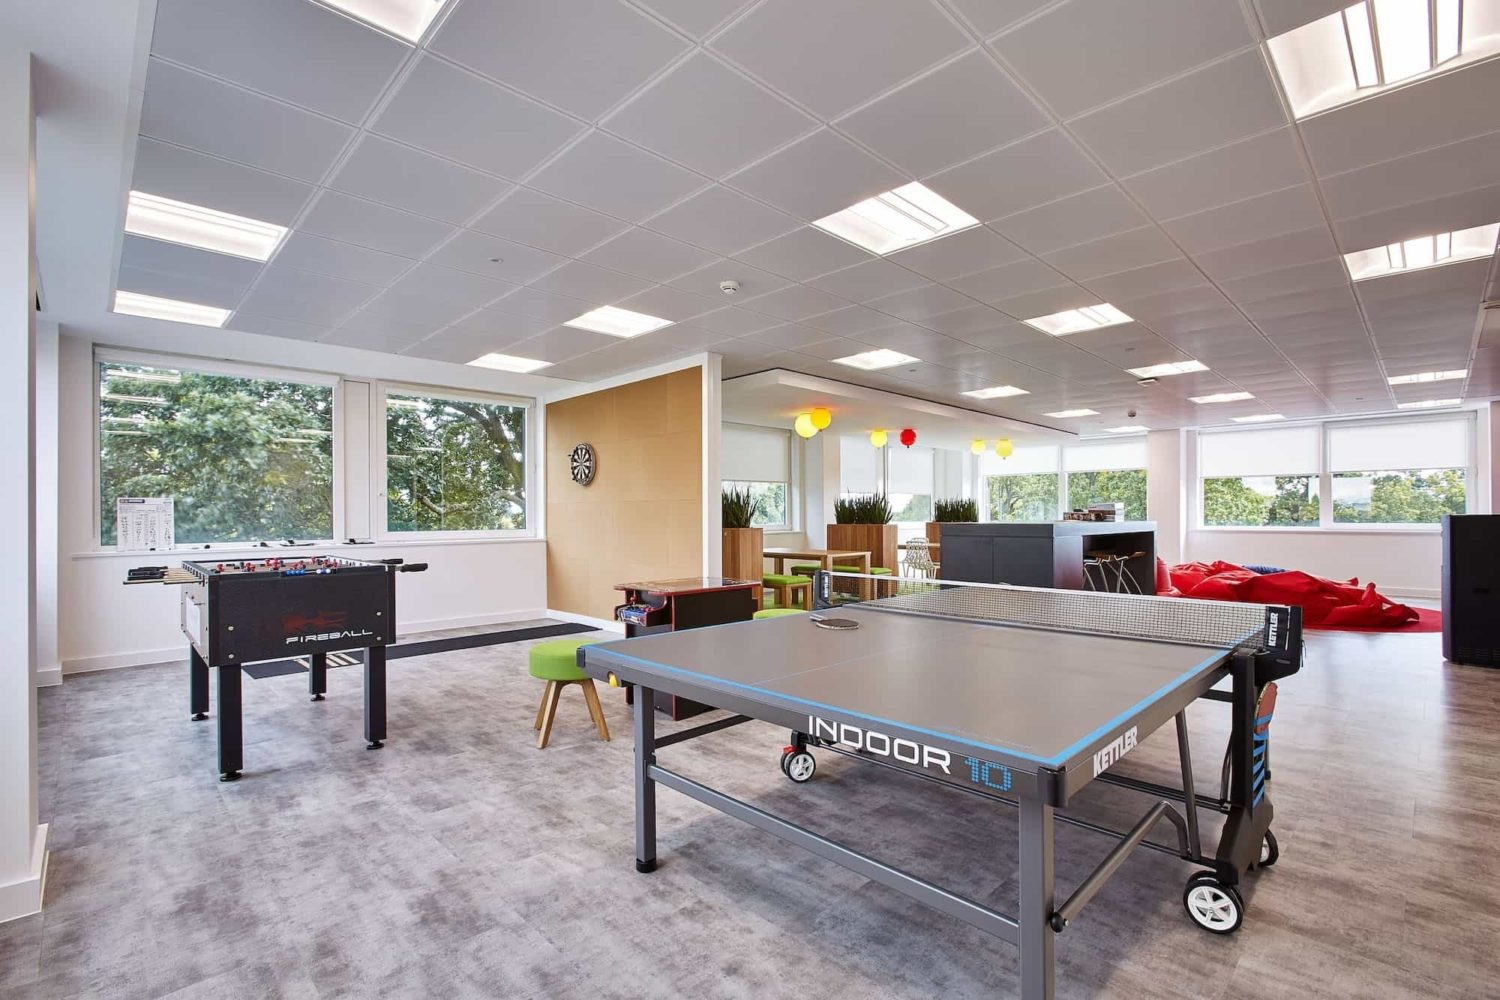 Phoebus table tennis in office fit out